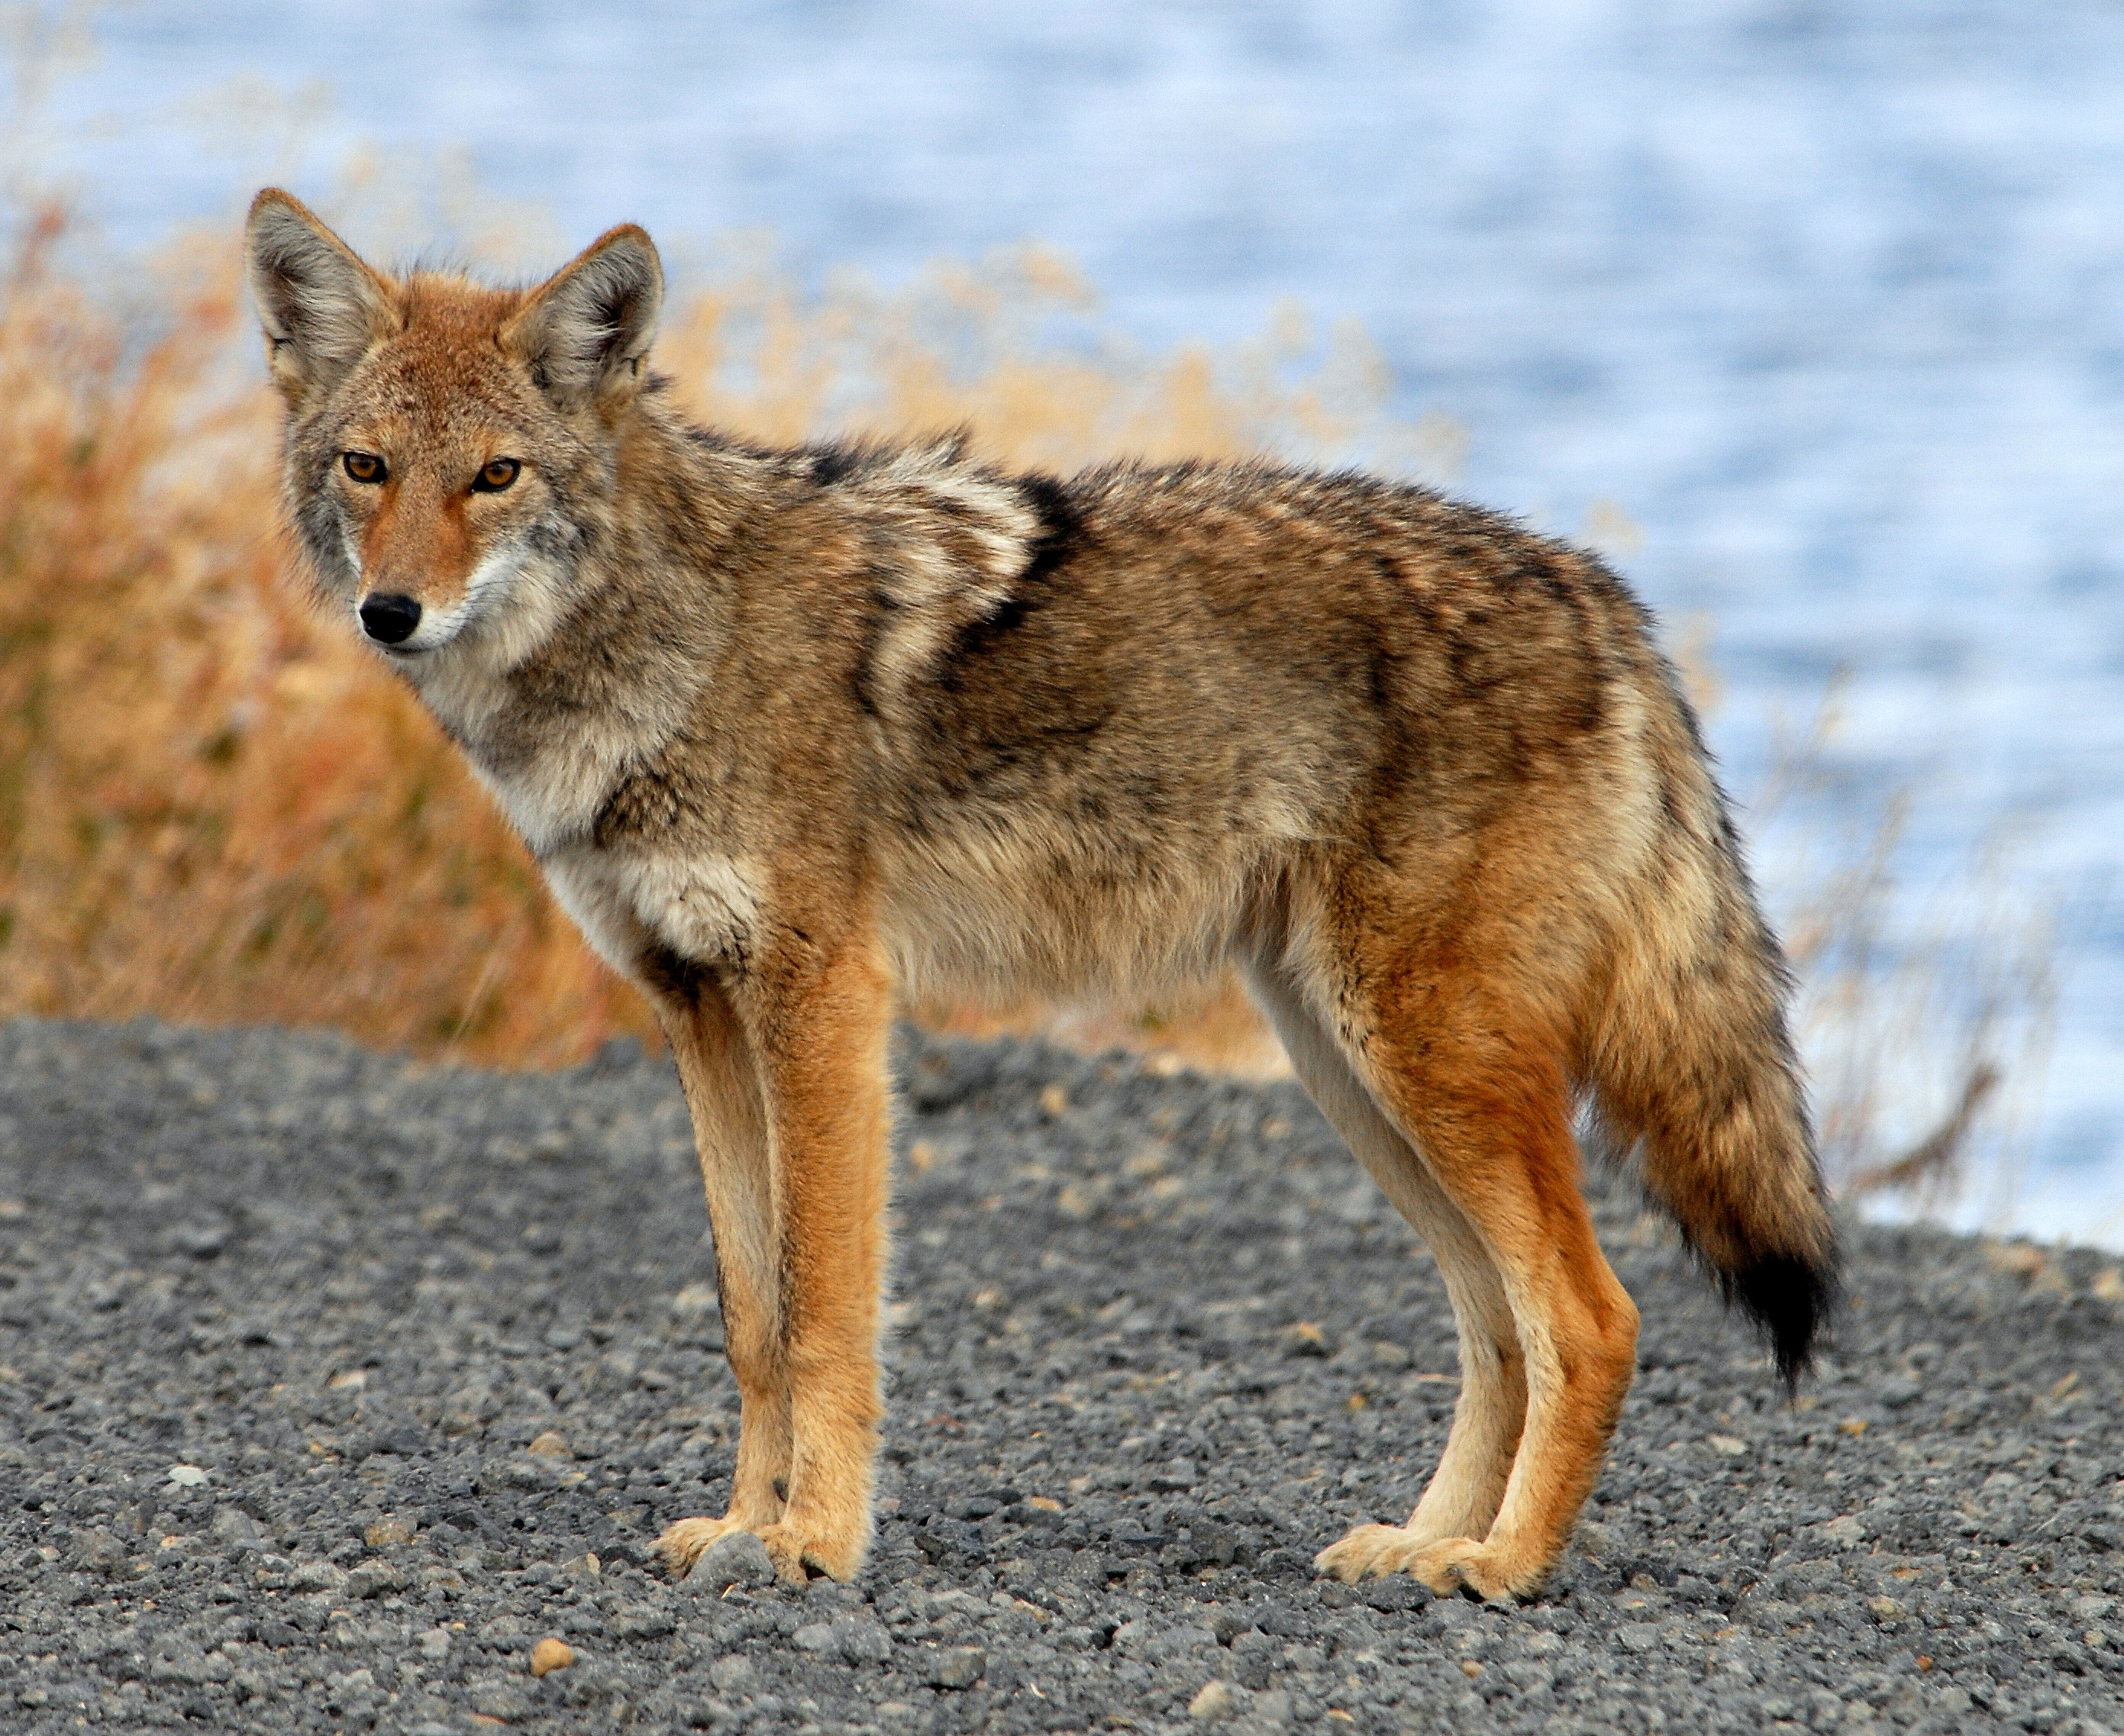 Coyote on a Bank of the River